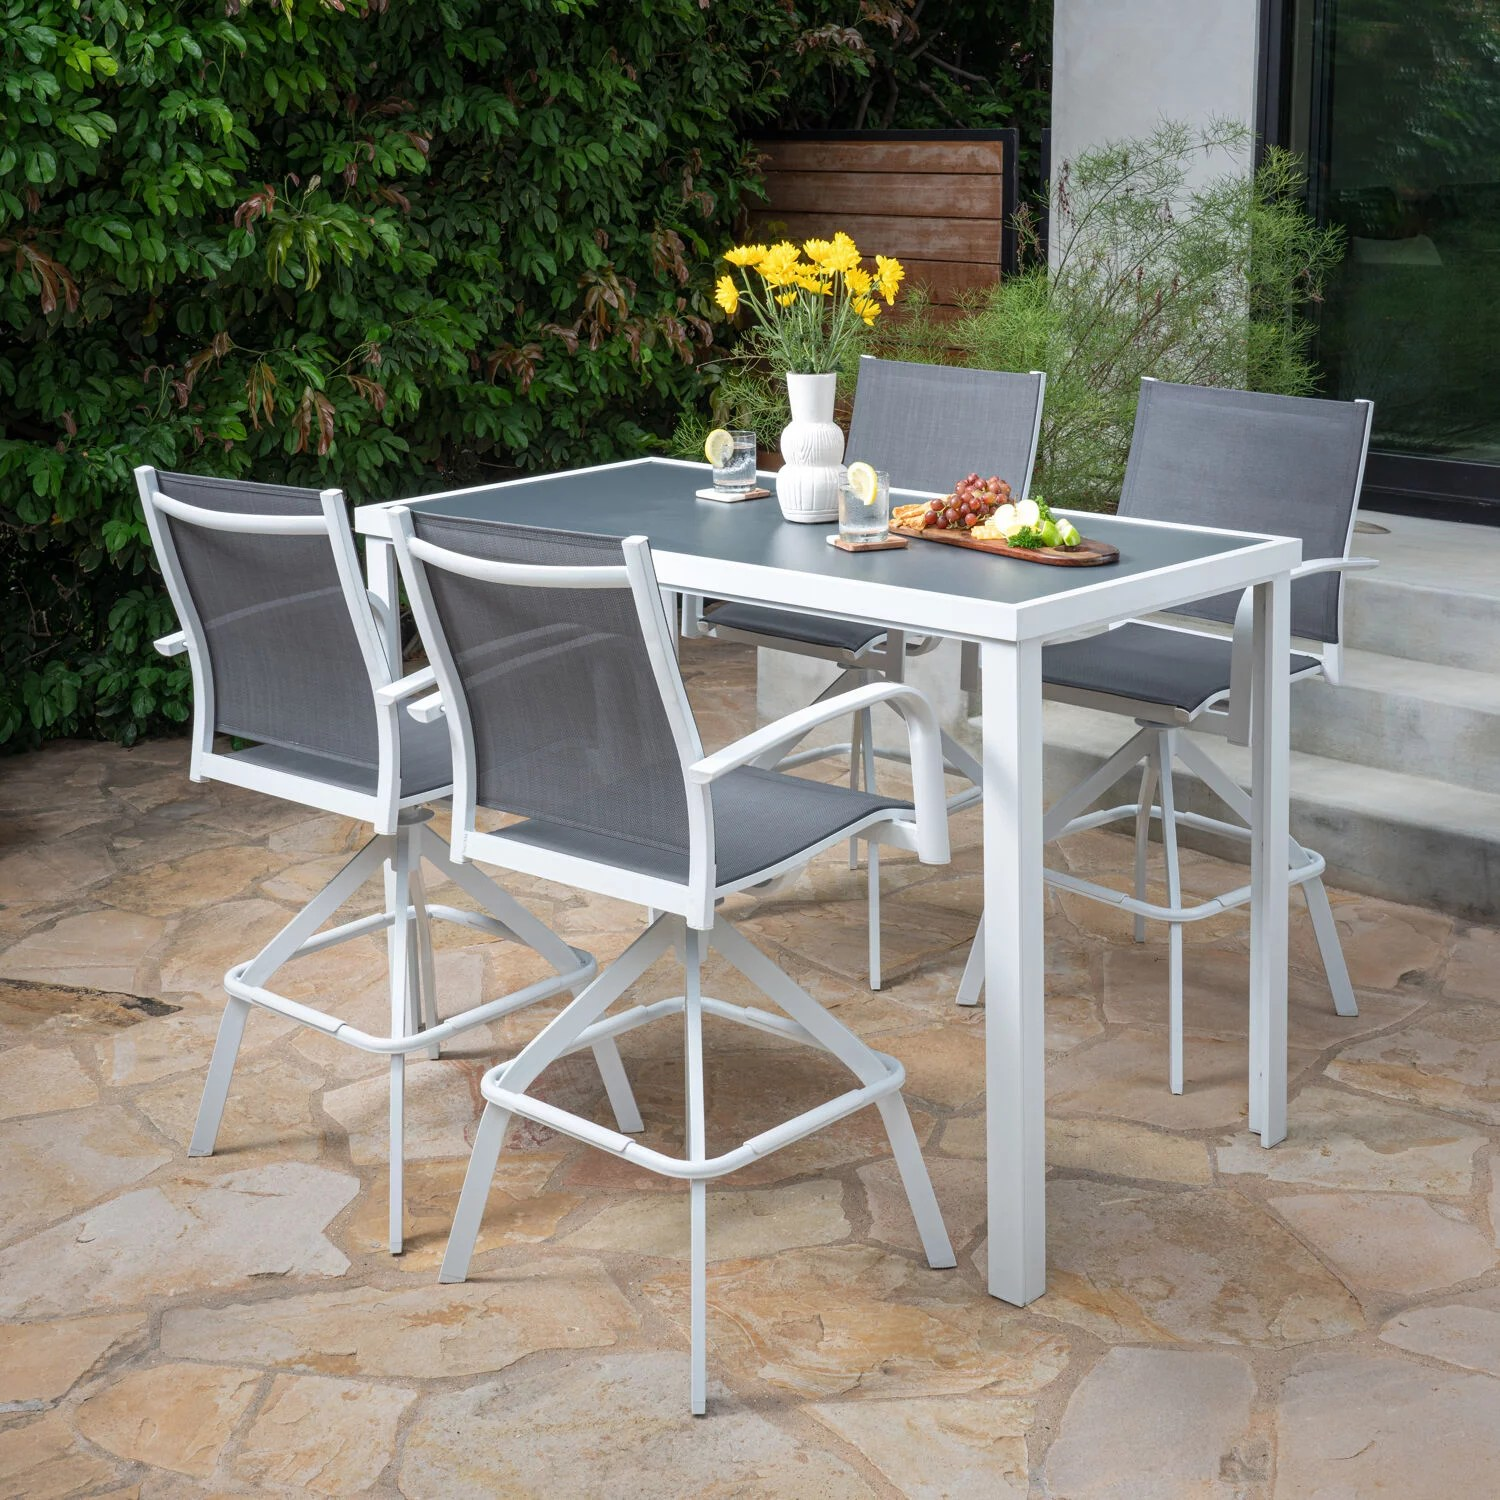 hanover naples 5 piece outdoor high dining set with 4 swivel bar chairs and a glass top bar table white